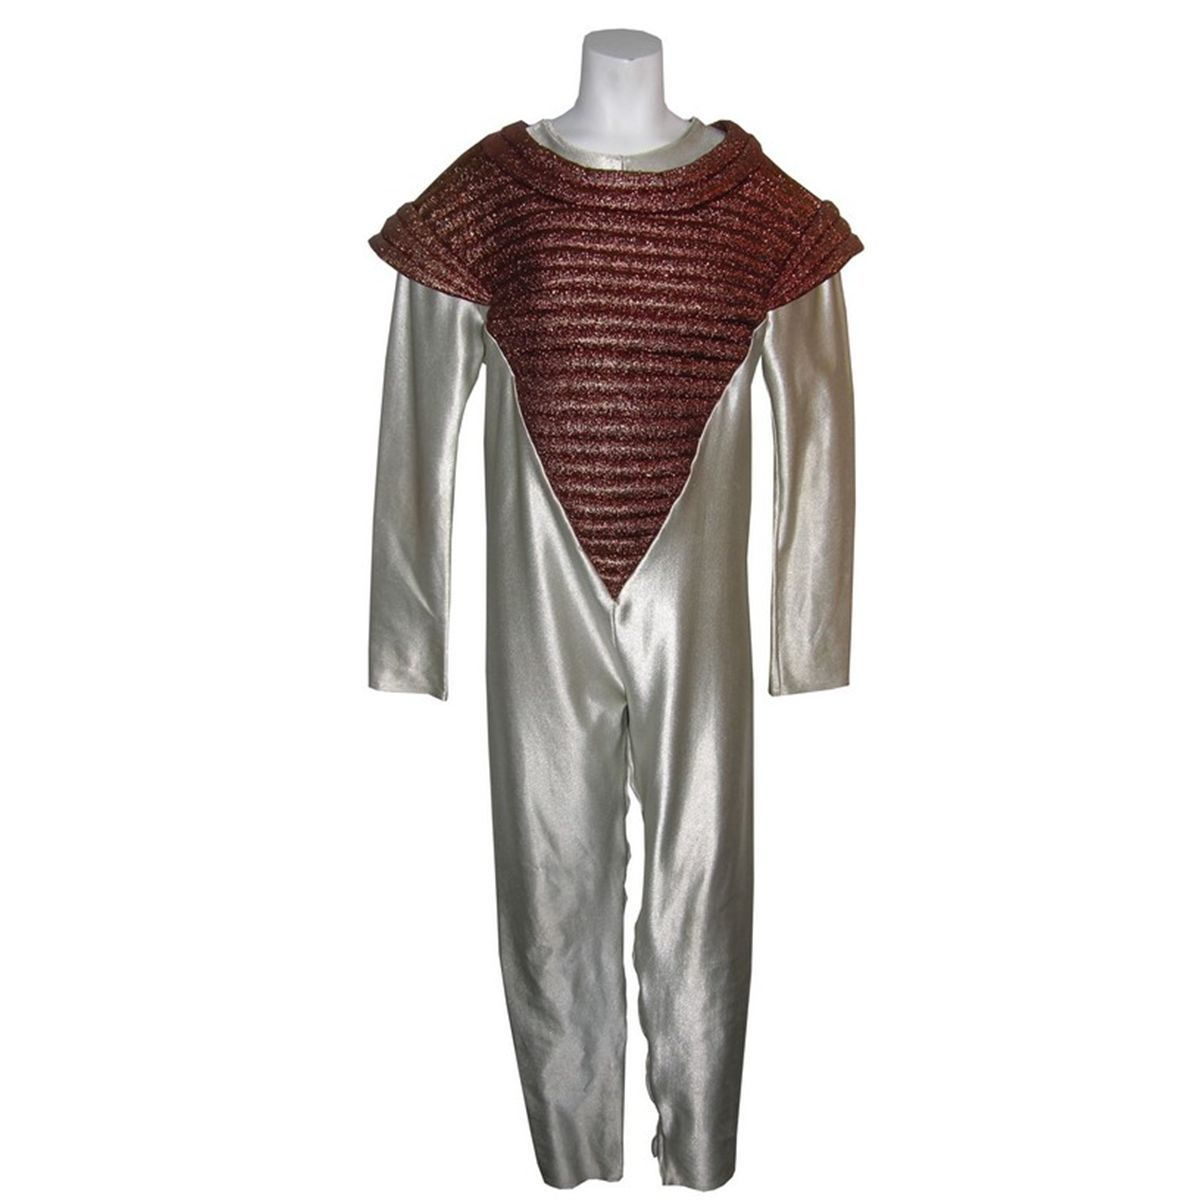 Gold and white outer space costume costume ideas for Outer space outfit